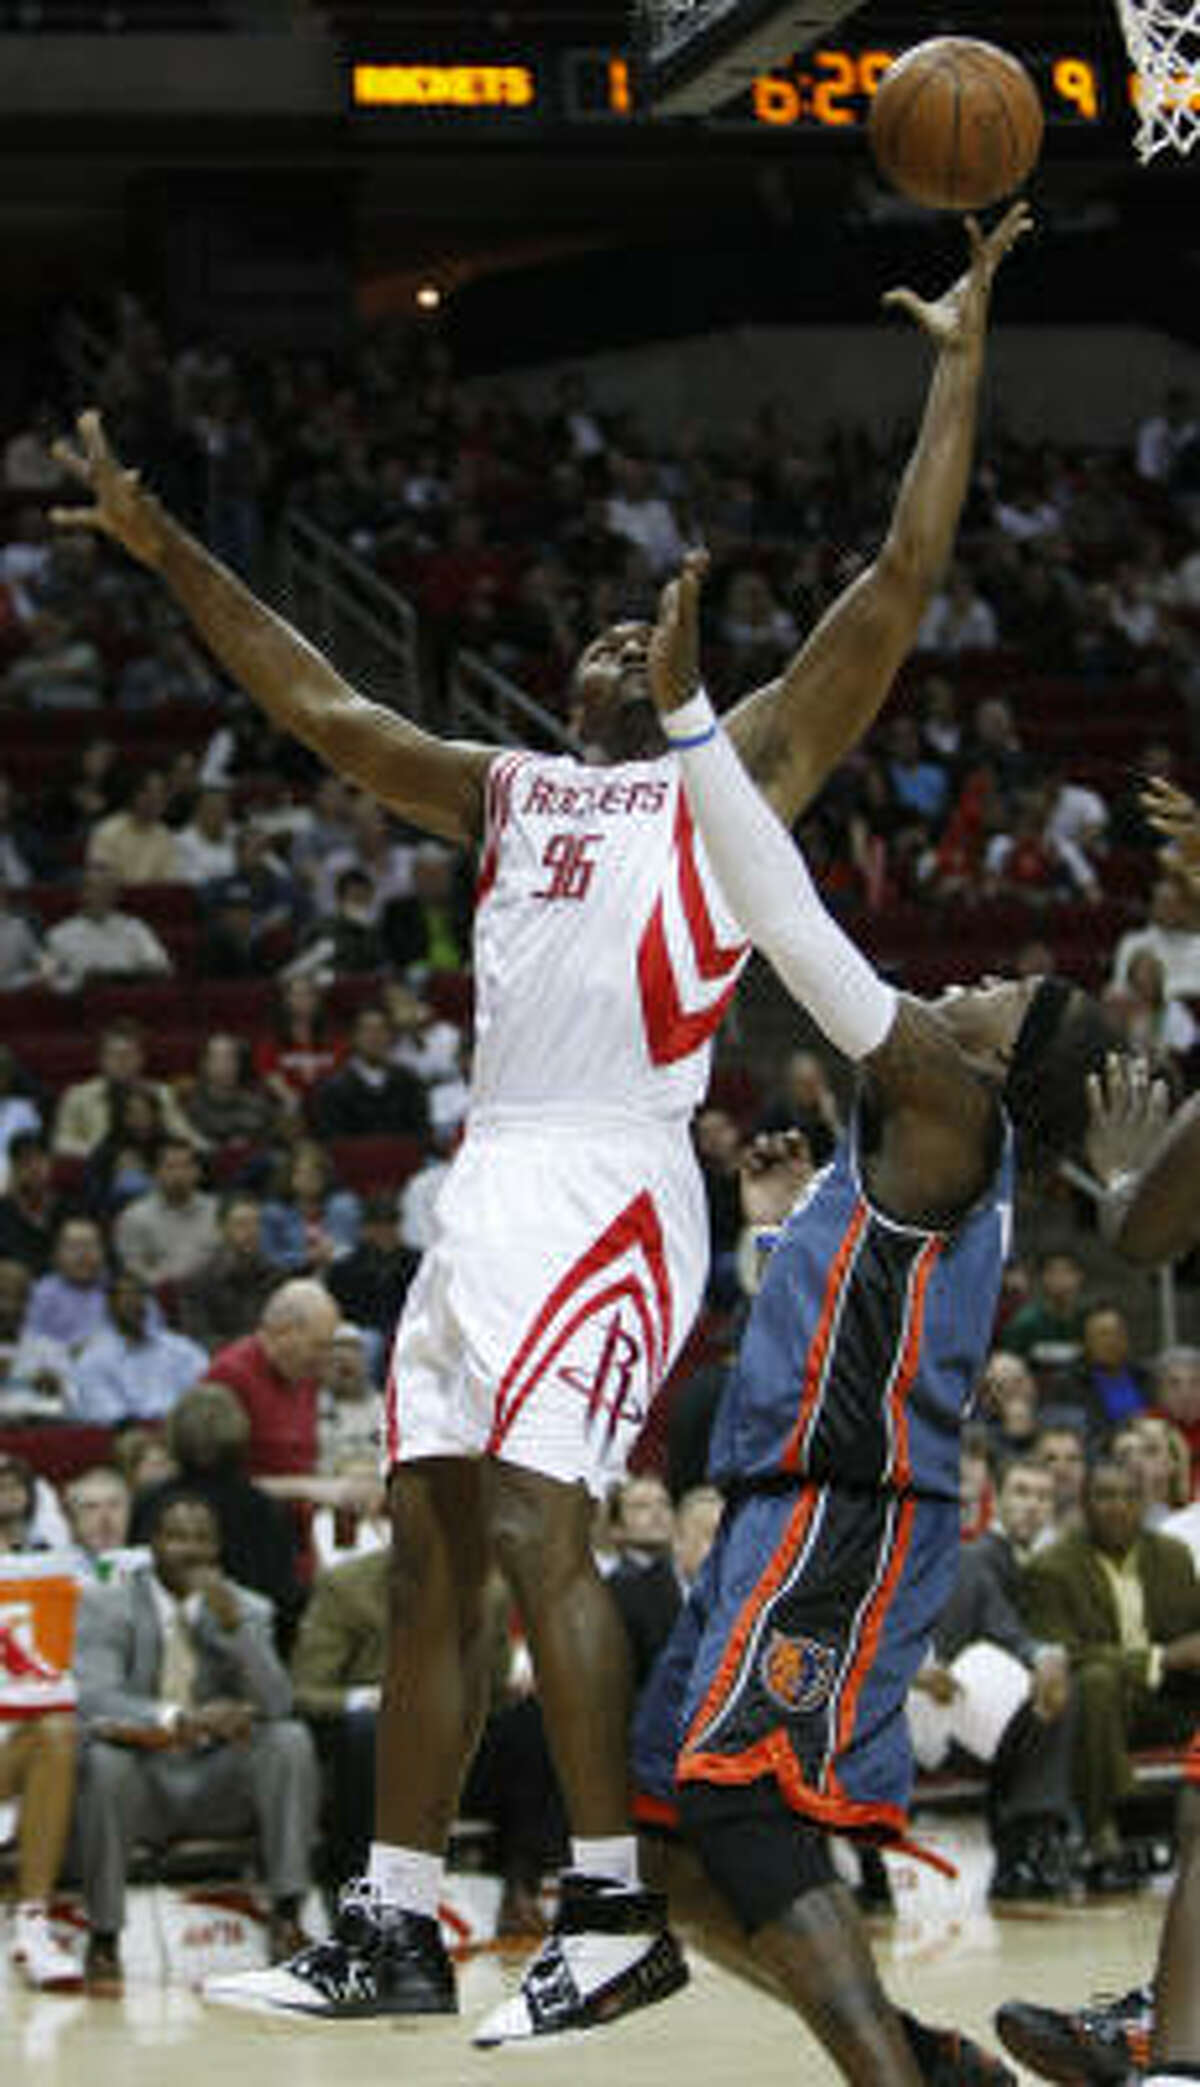 Ron Artest (96) shoots over Bobcats forward Gerald Wallace in the first half. Artest scored a game-high 26 points to lead Houston.